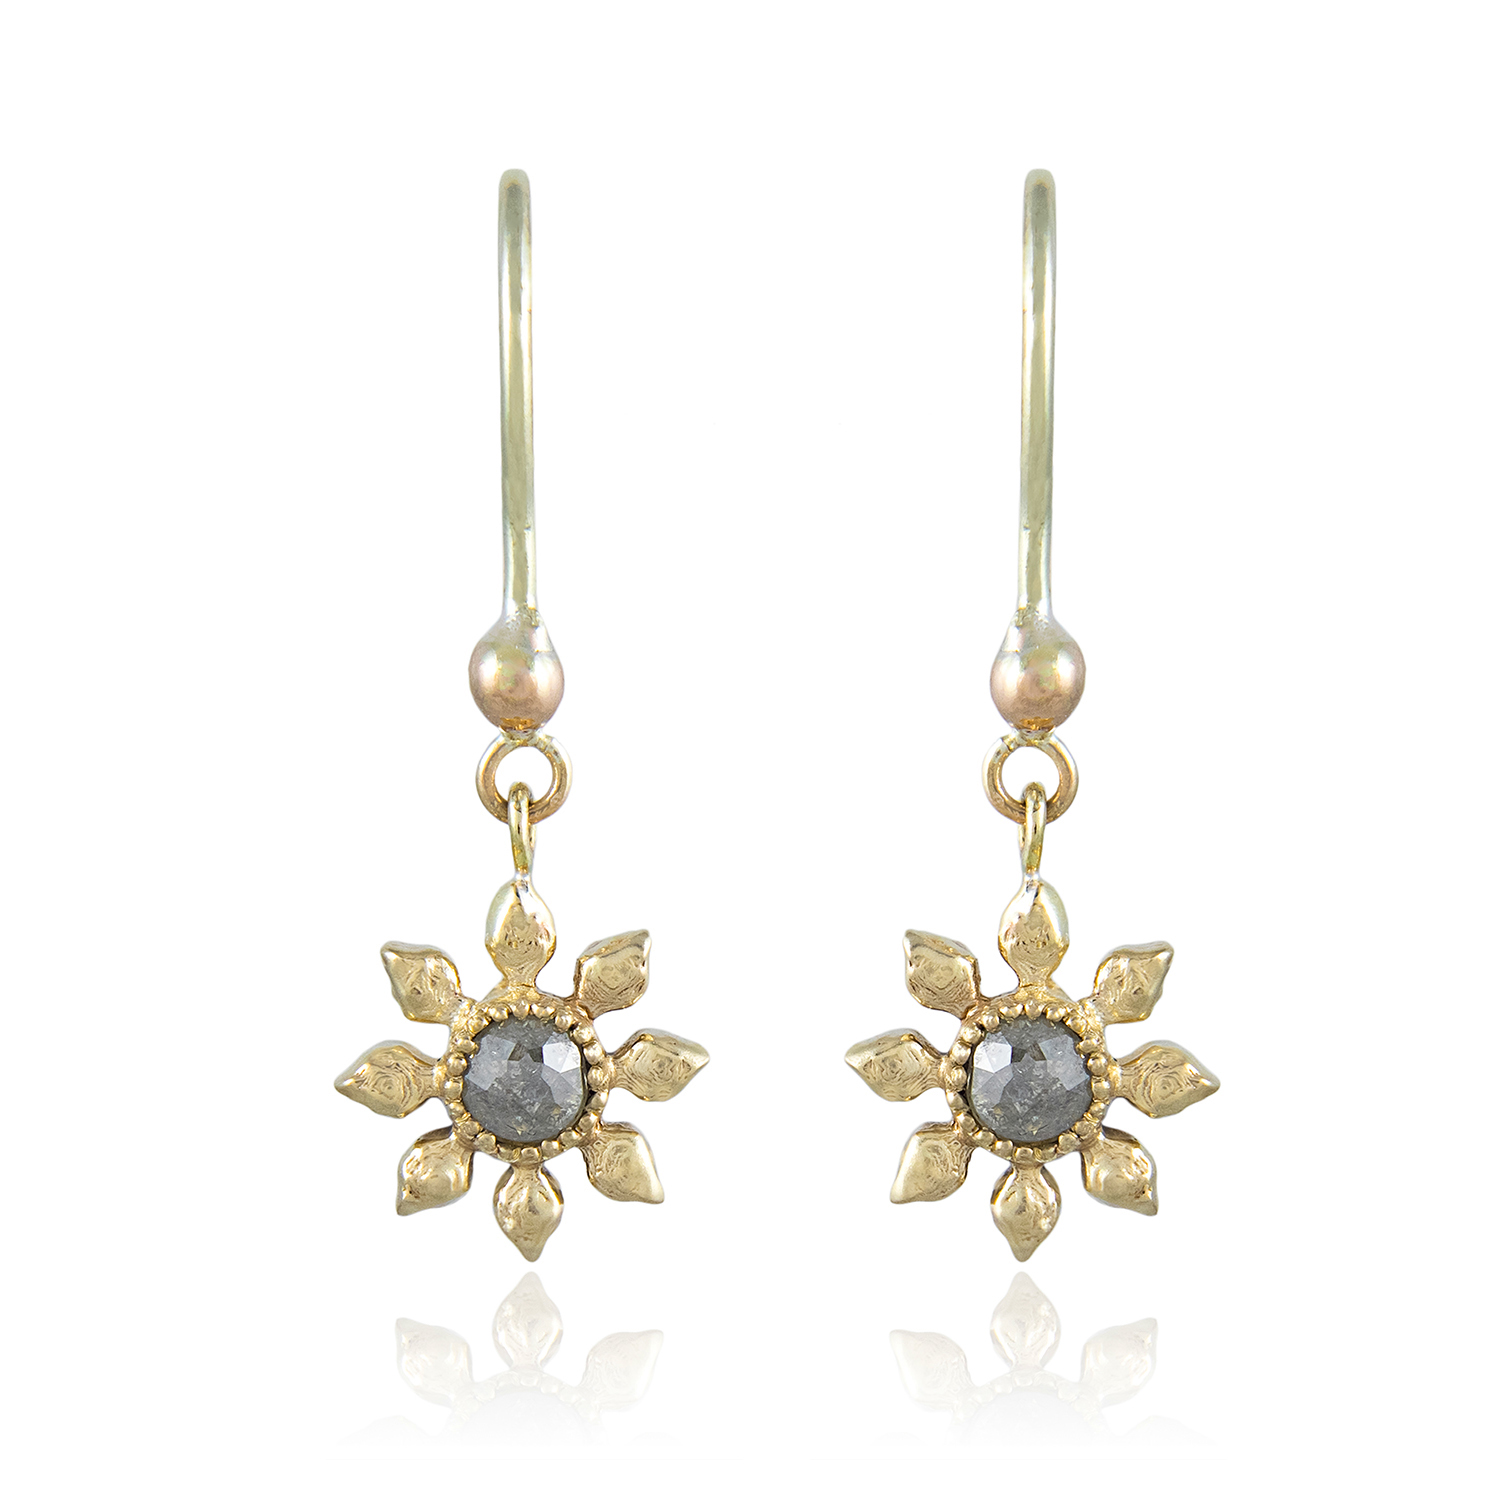 Natalie Perry Jewellery, Diamond Flower Hook Earrings